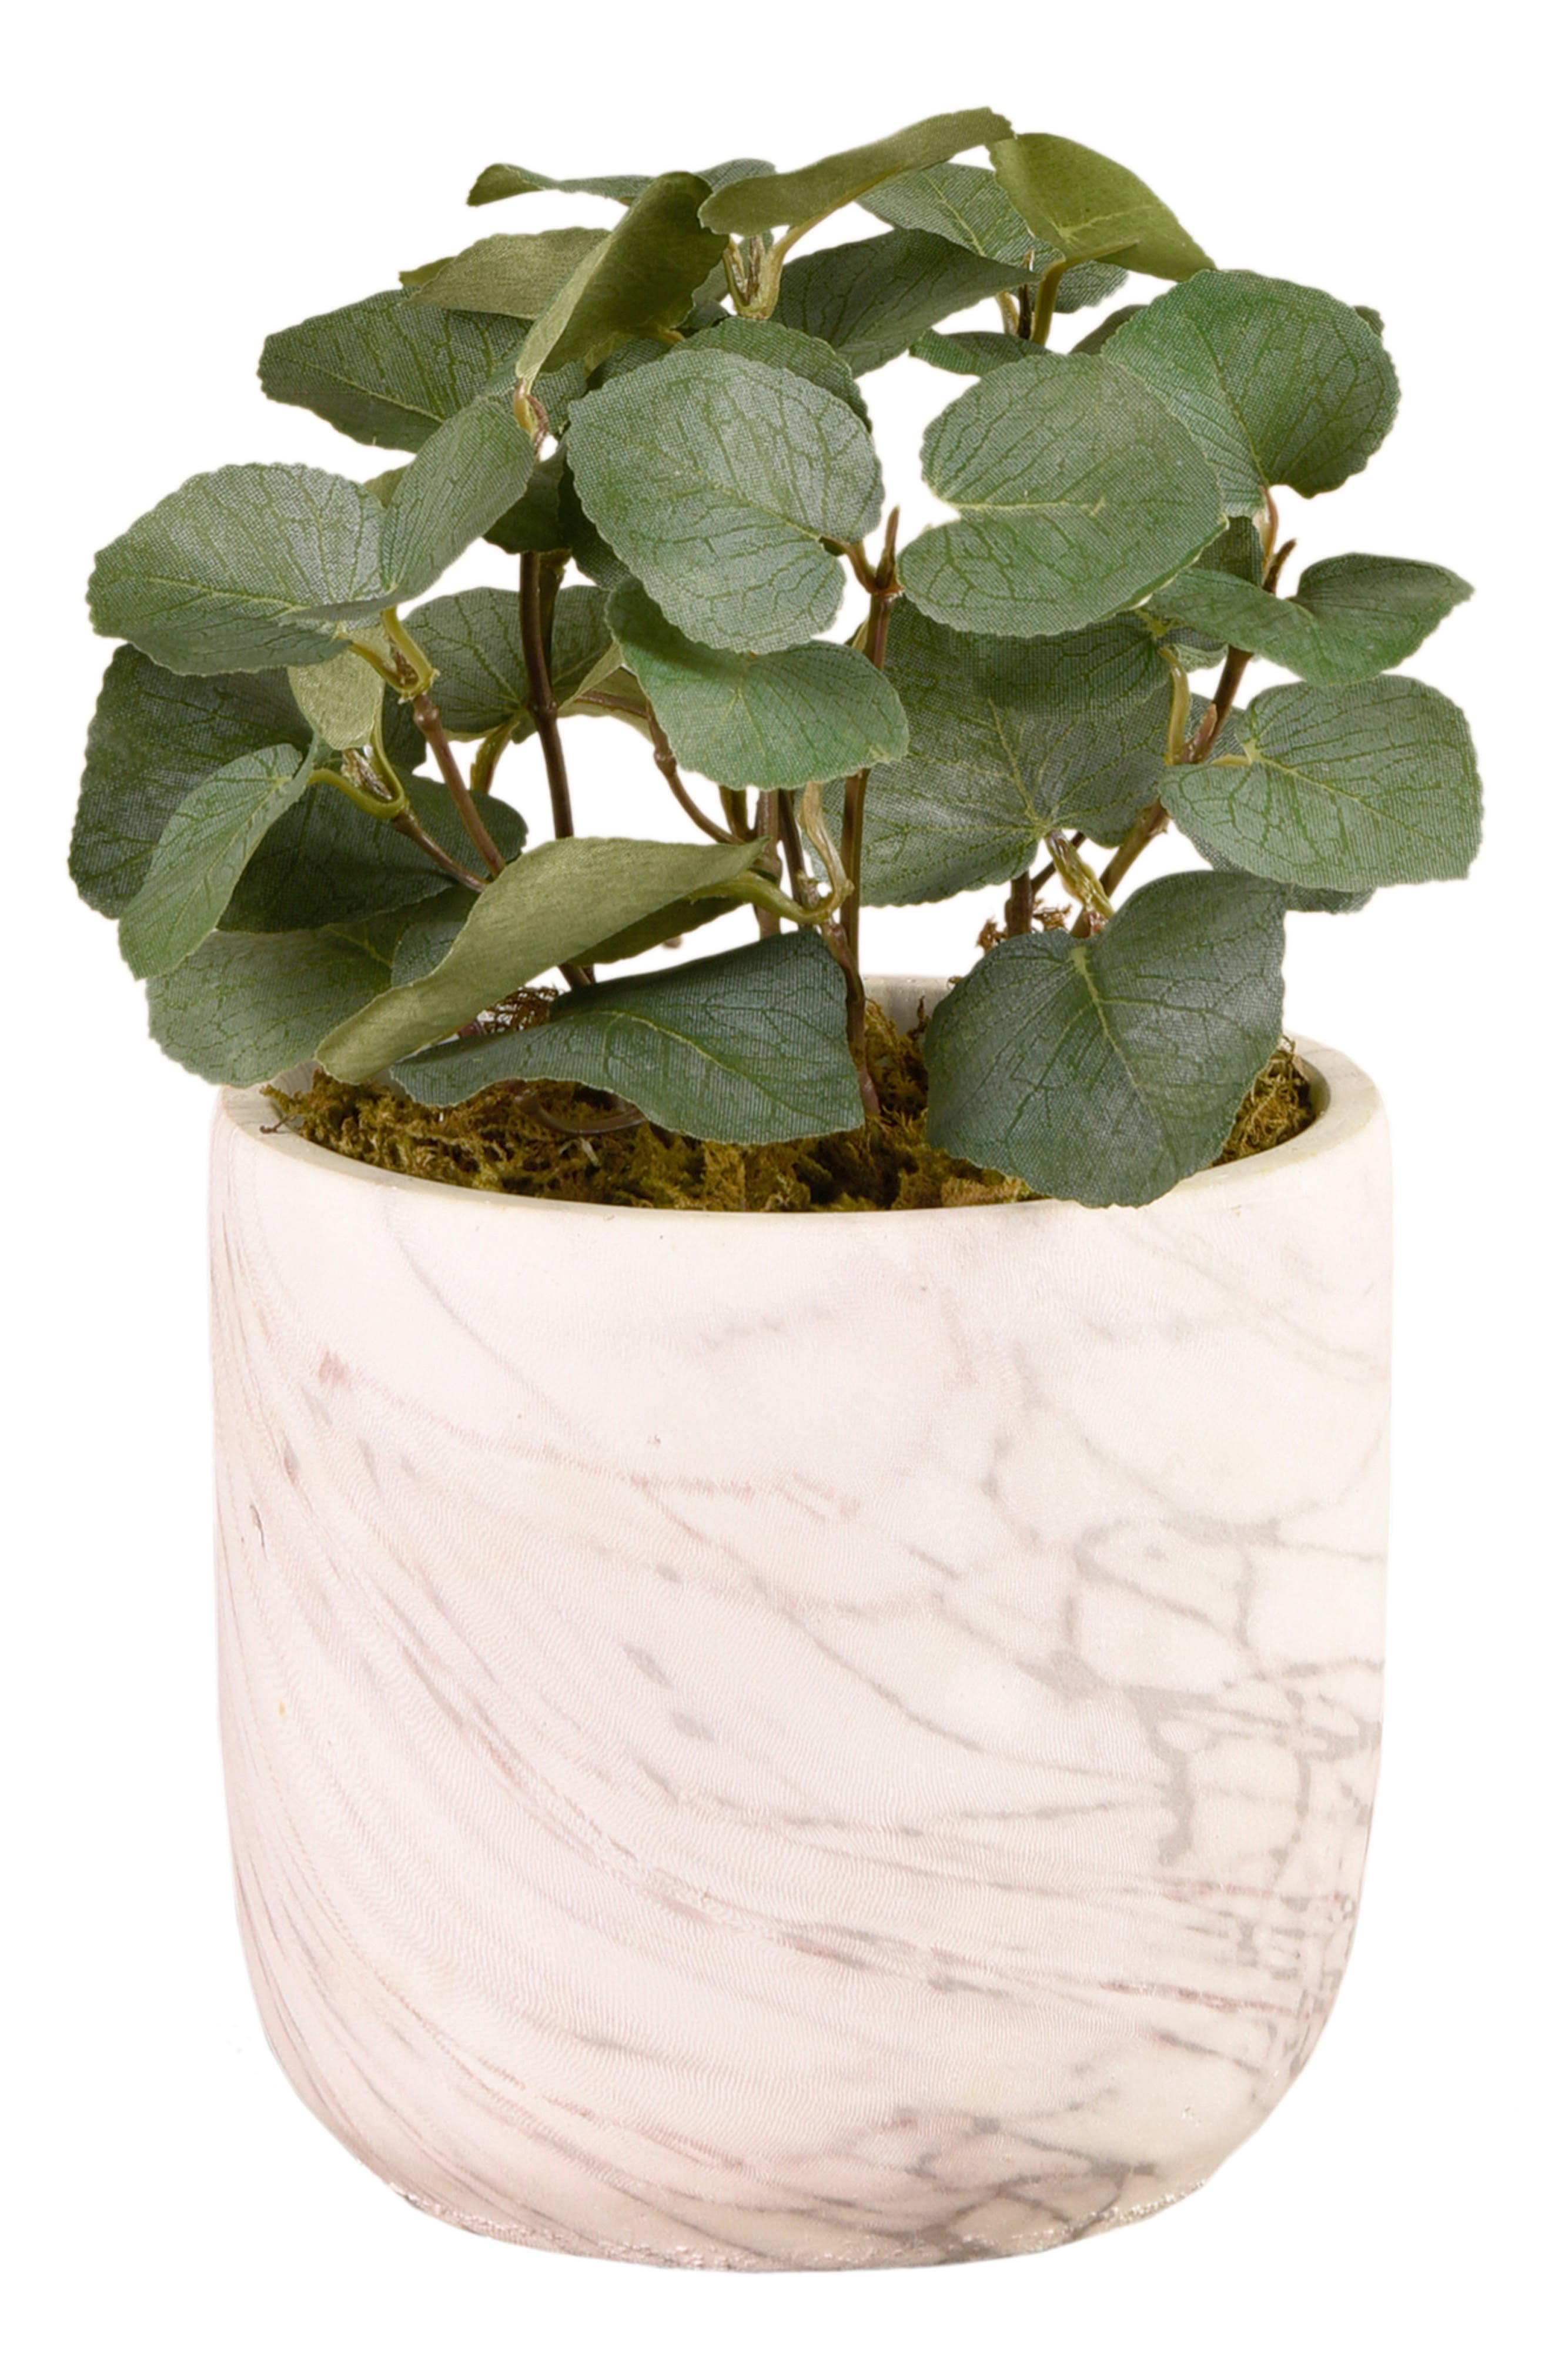 There\\\'s no need for a green thumb when you\\\'ve got this charming florist-designed faux eucalyptus sitting cheerily in a marbled concrete pot. The design serves as a perfect complement to any modern or classical decor. Style Name: Bloomr Potted Eucalyptus Planter Decoration. Style Number: 6090697. Available in stores.